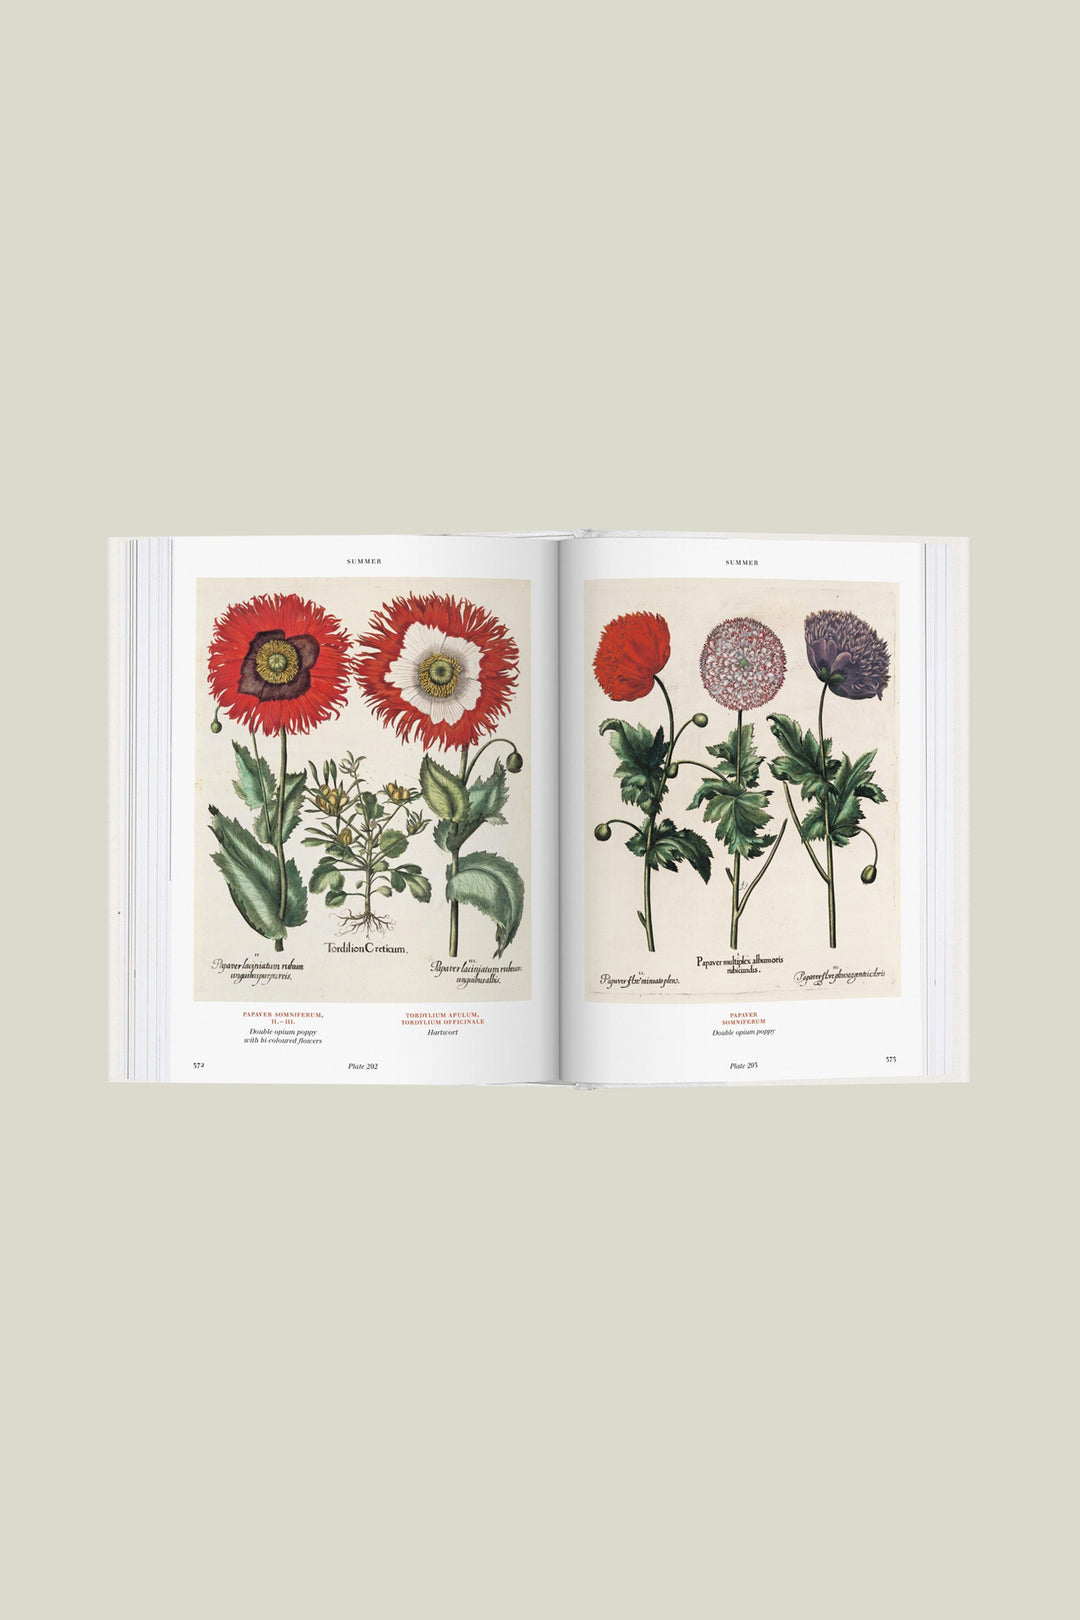 Florilegium - The Book of Plants